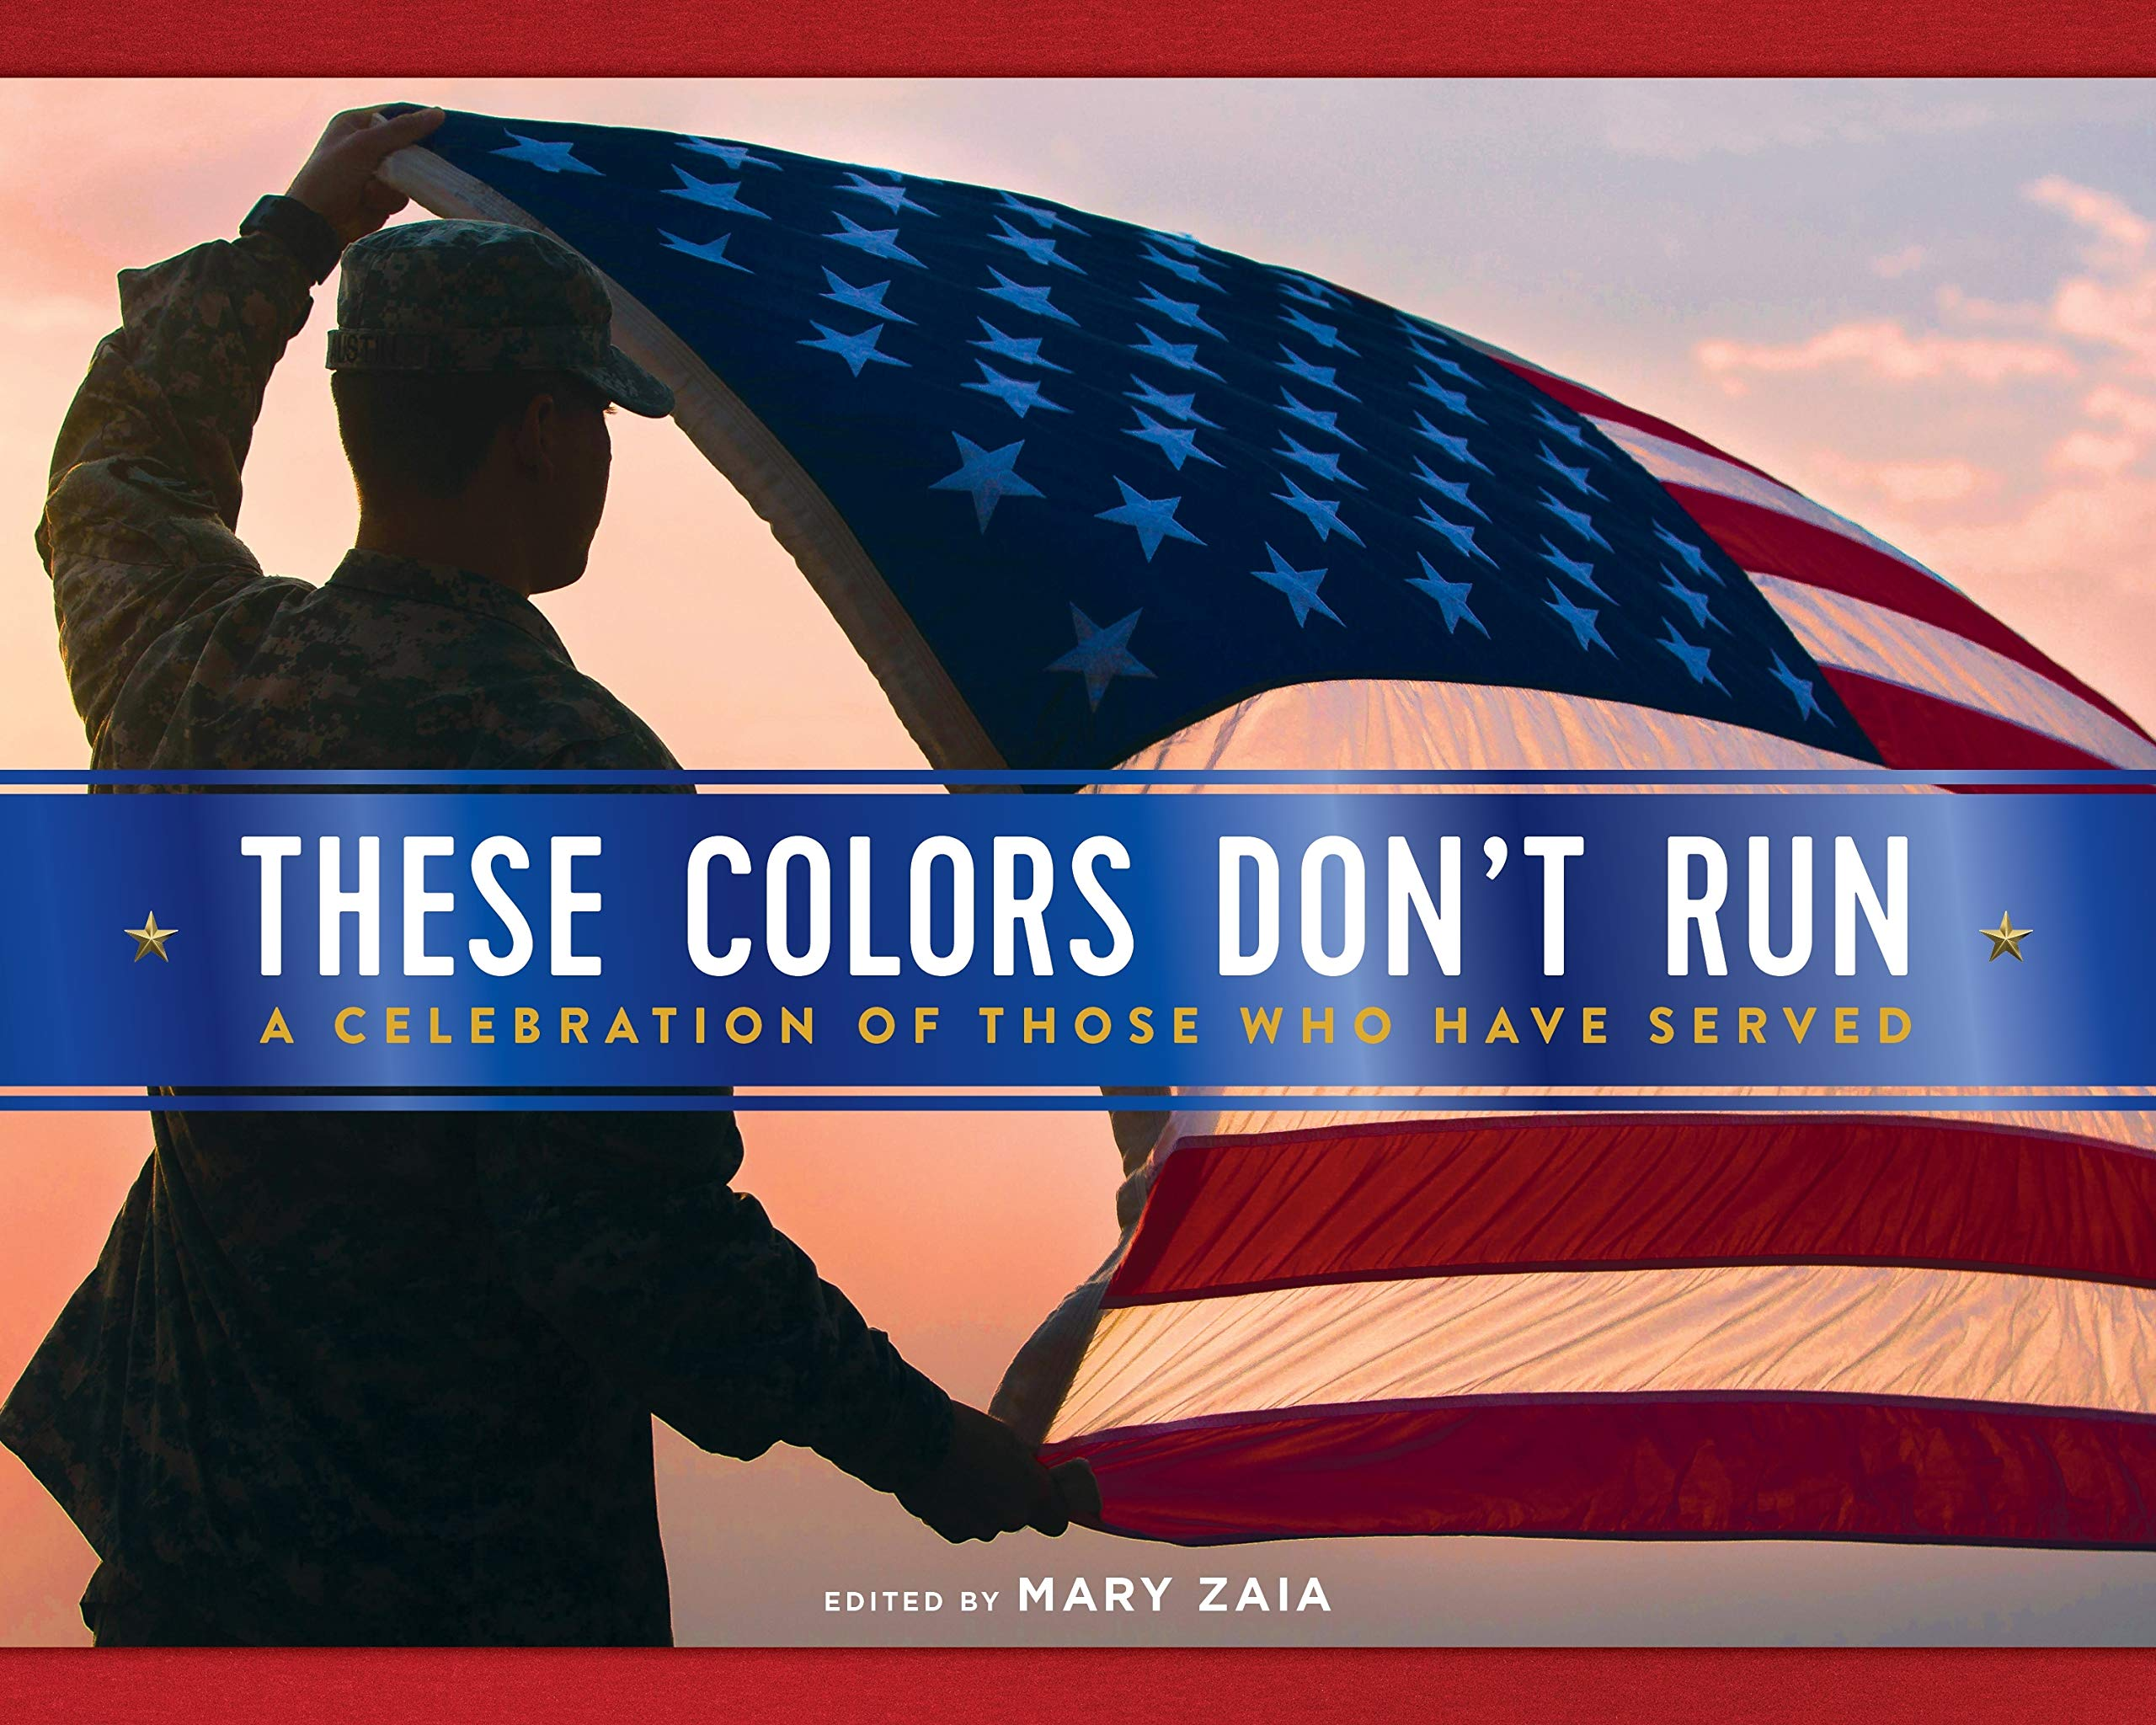 These Colors Don't Run: A Celebration of Those Who Have Served: Zaia, Mary:  9781250272119: Amazon.com: Books